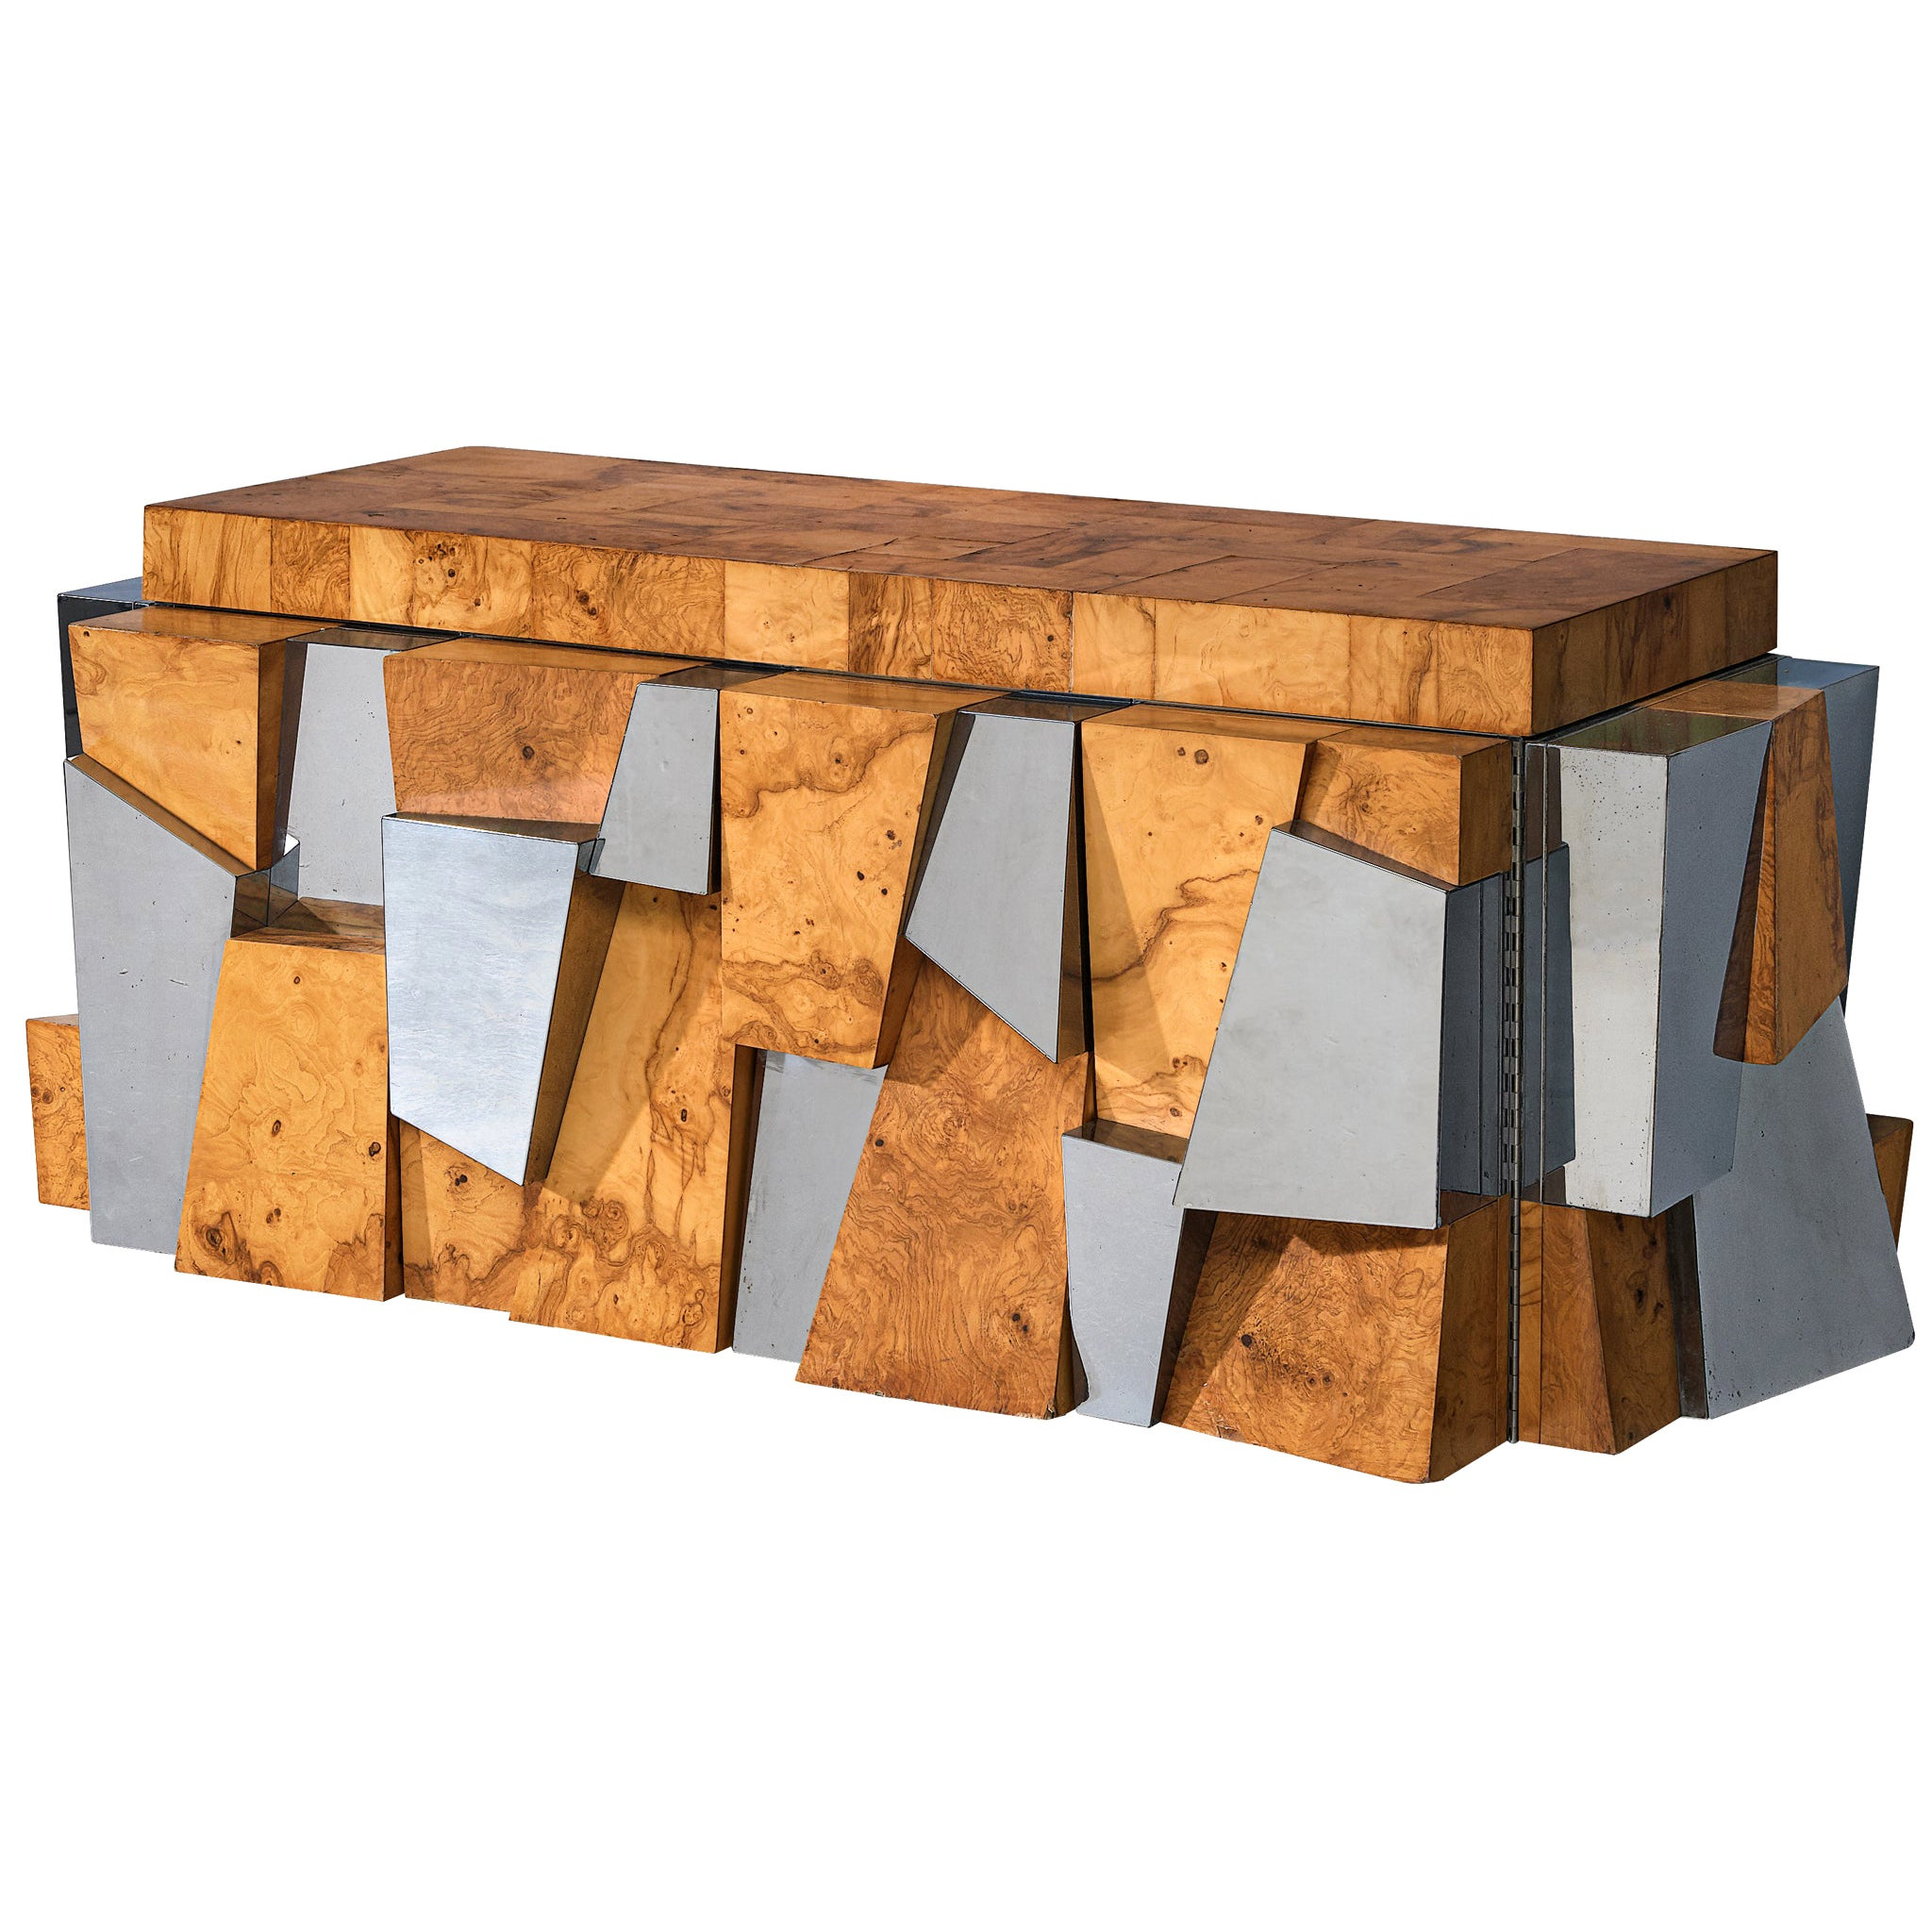 Paul Evans 'Faceted' Wall Sideboard in Chrome and Burl